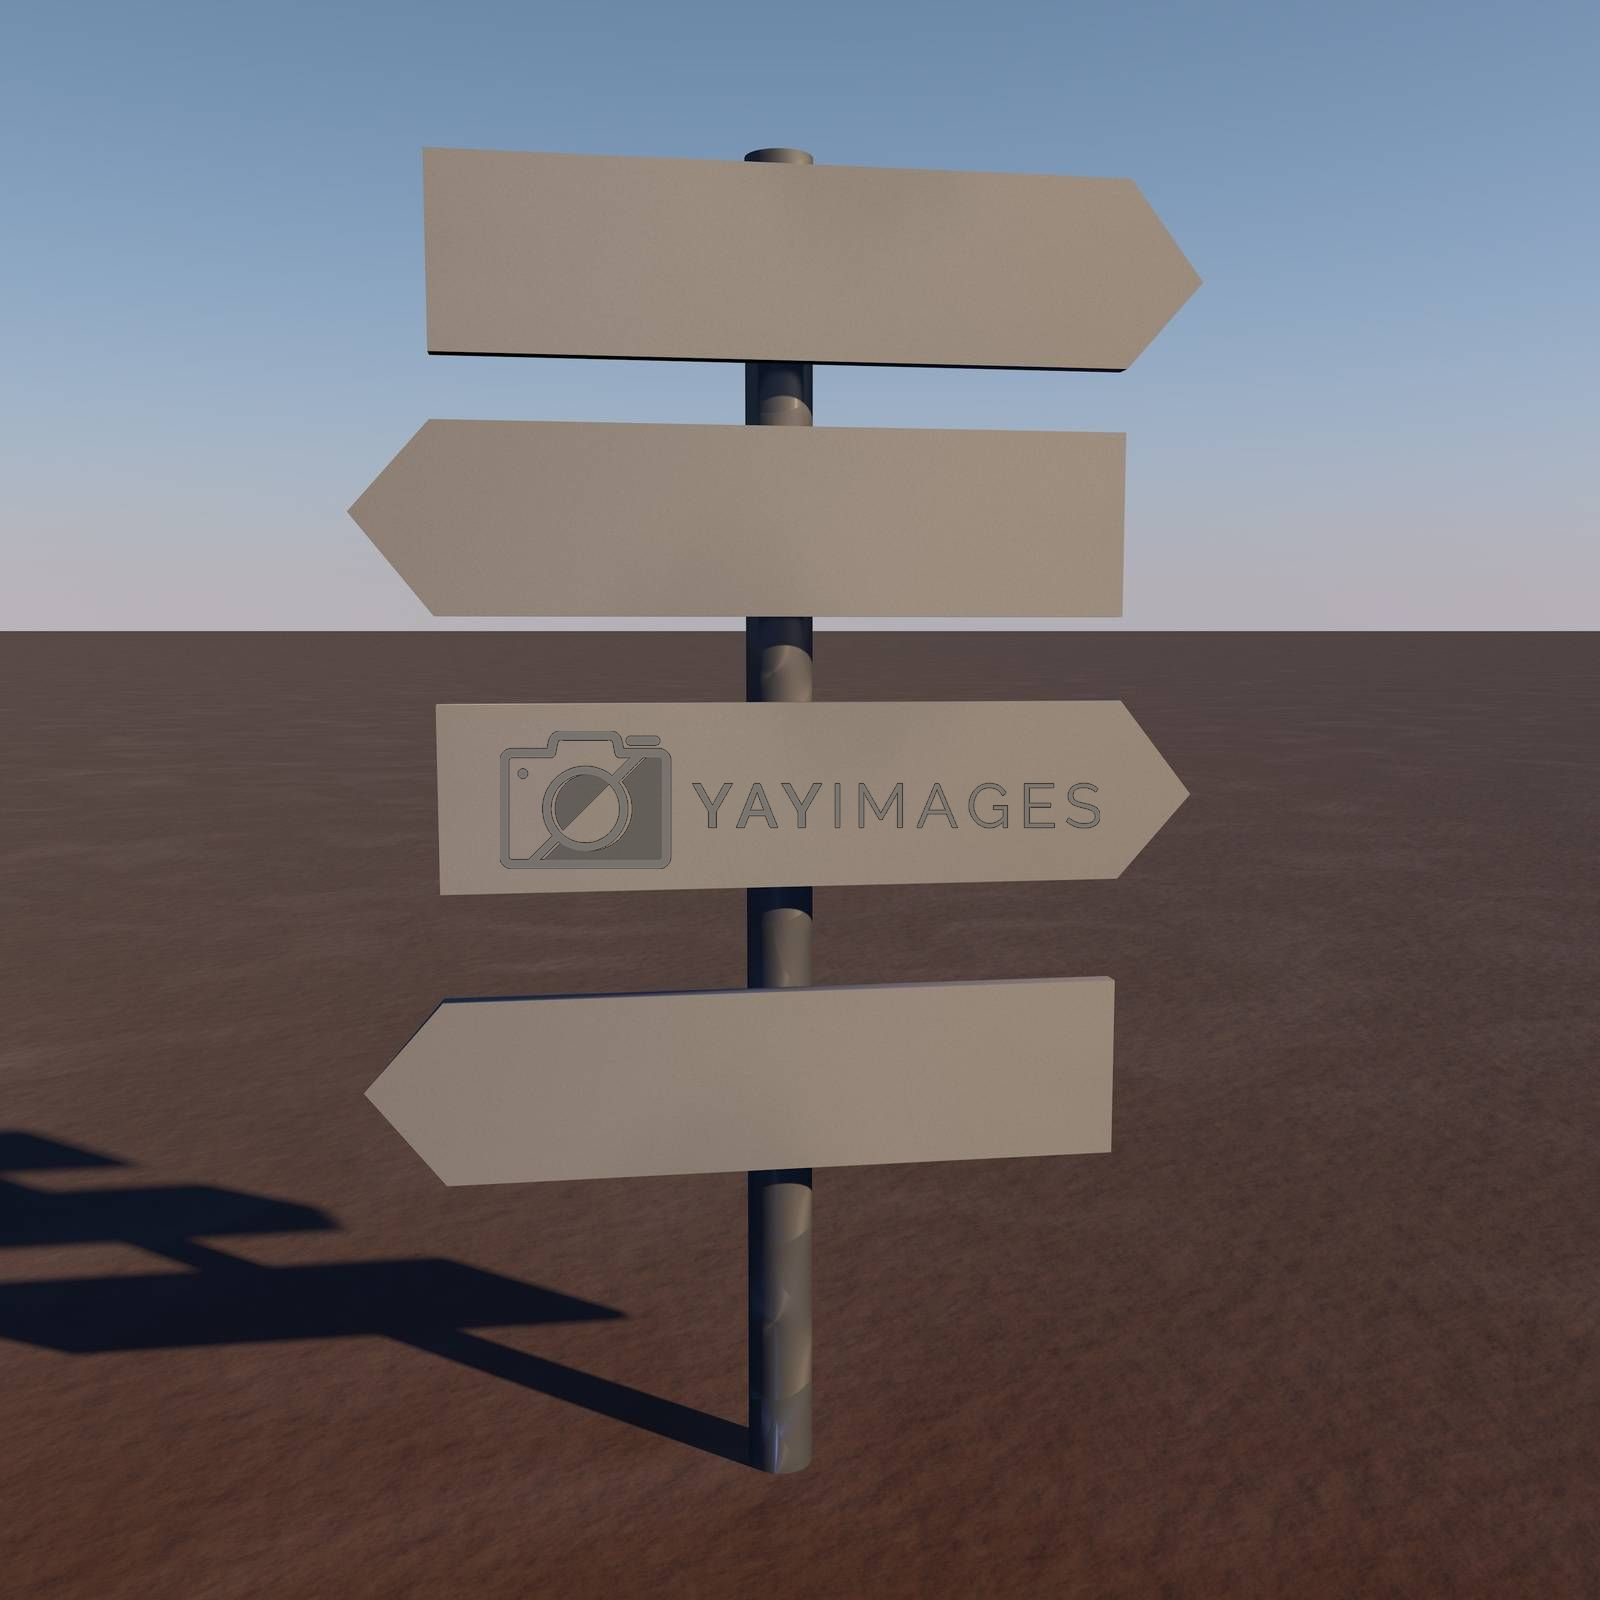 Directional signs by Koufax73